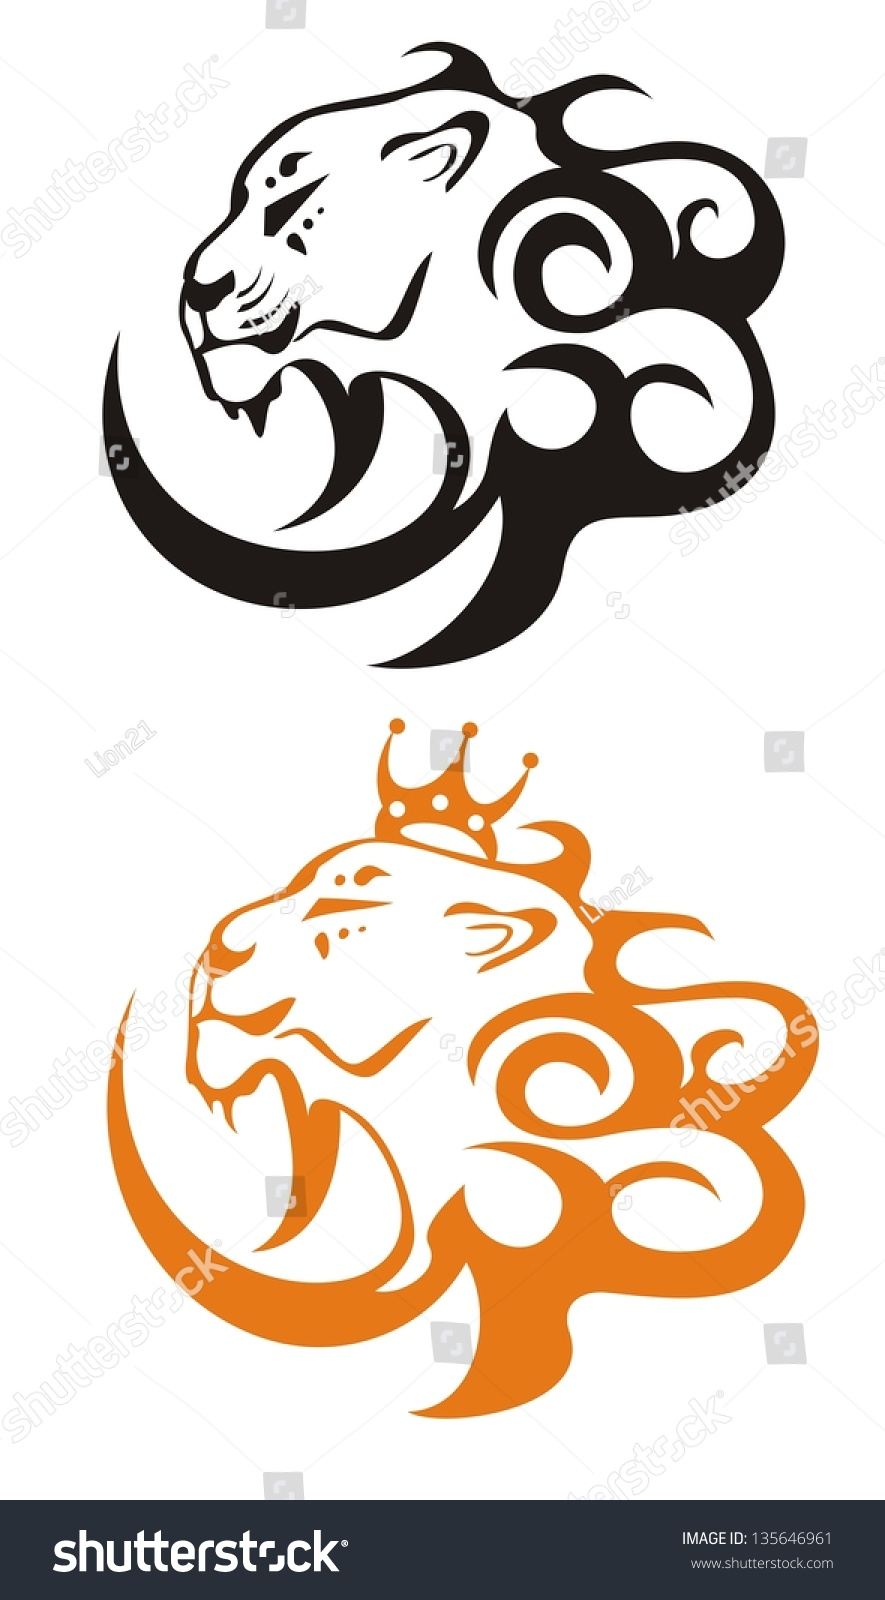 Lion king vector lion symbols stock vector 135646961 shutterstock lion king vector lion symbols biocorpaavc Gallery